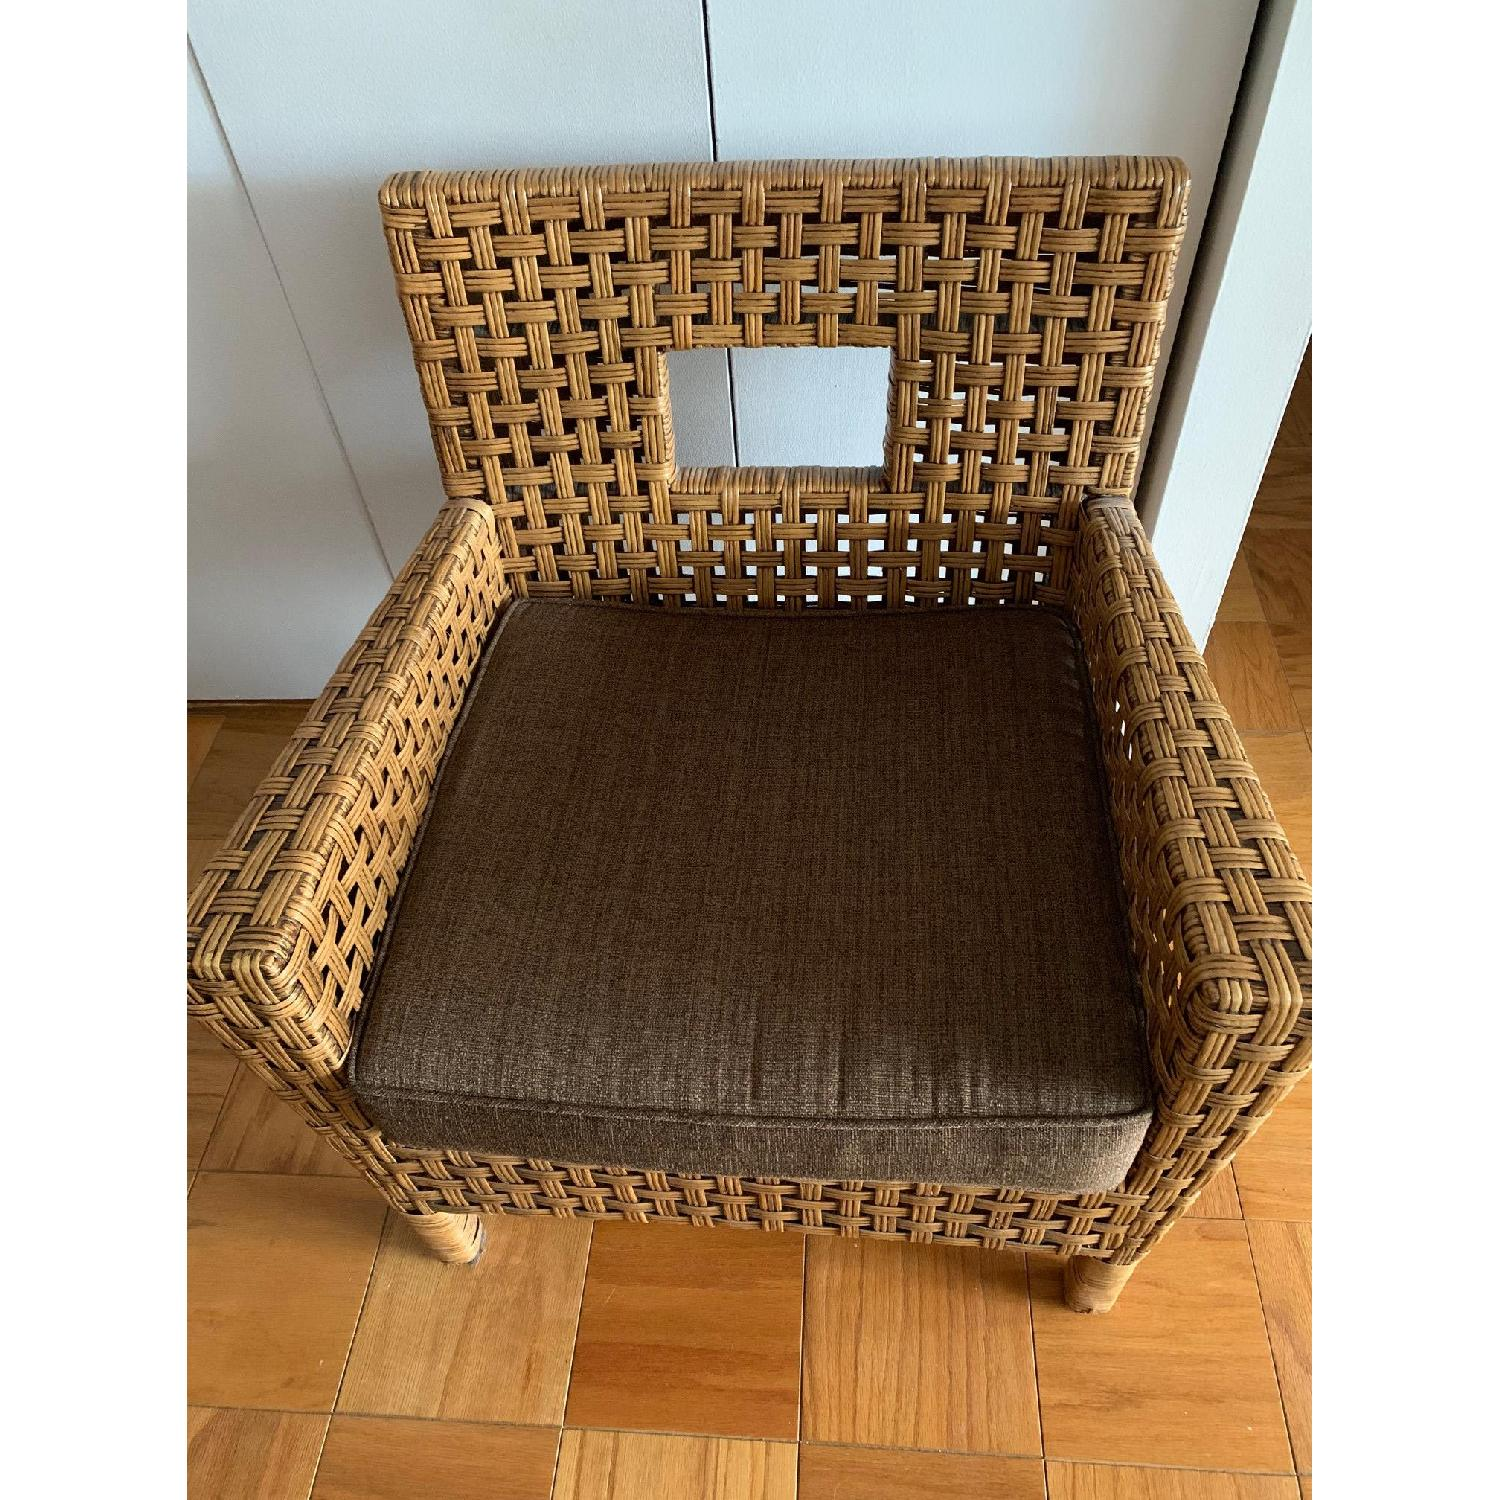 Pier 1 Wicker Chairs w/ Removable Cushions - image-4